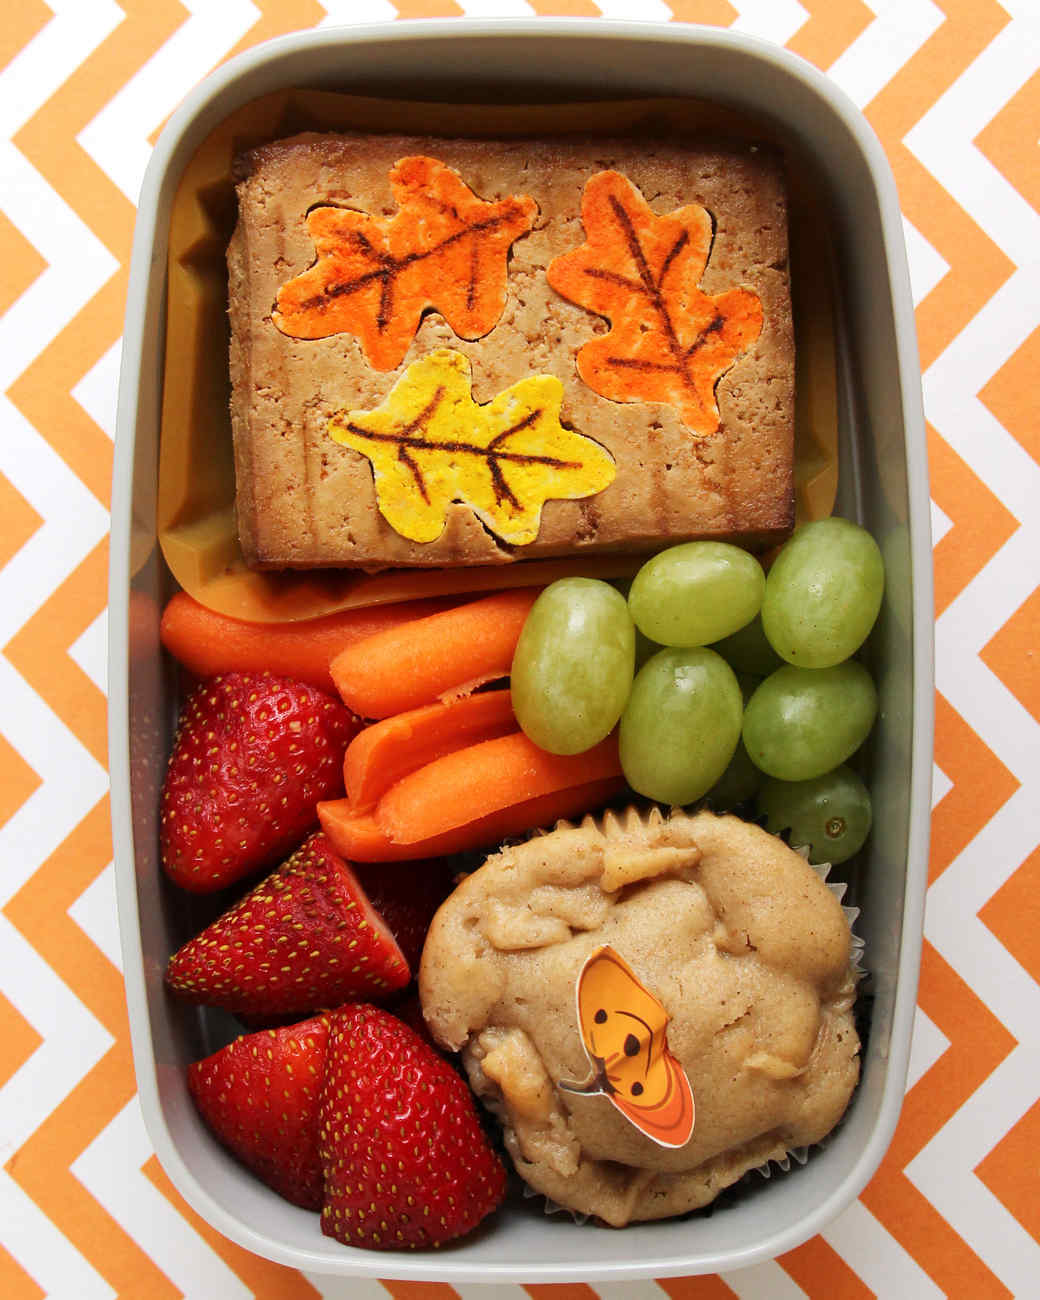 12 Super-Cool Kidsu0027 Bento-Box Lunches You Can Actually Make | Martha Stewart & 12 Super-Cool Kidsu0027 Bento-Box Lunches You Can Actually Make ... Aboutintivar.Com